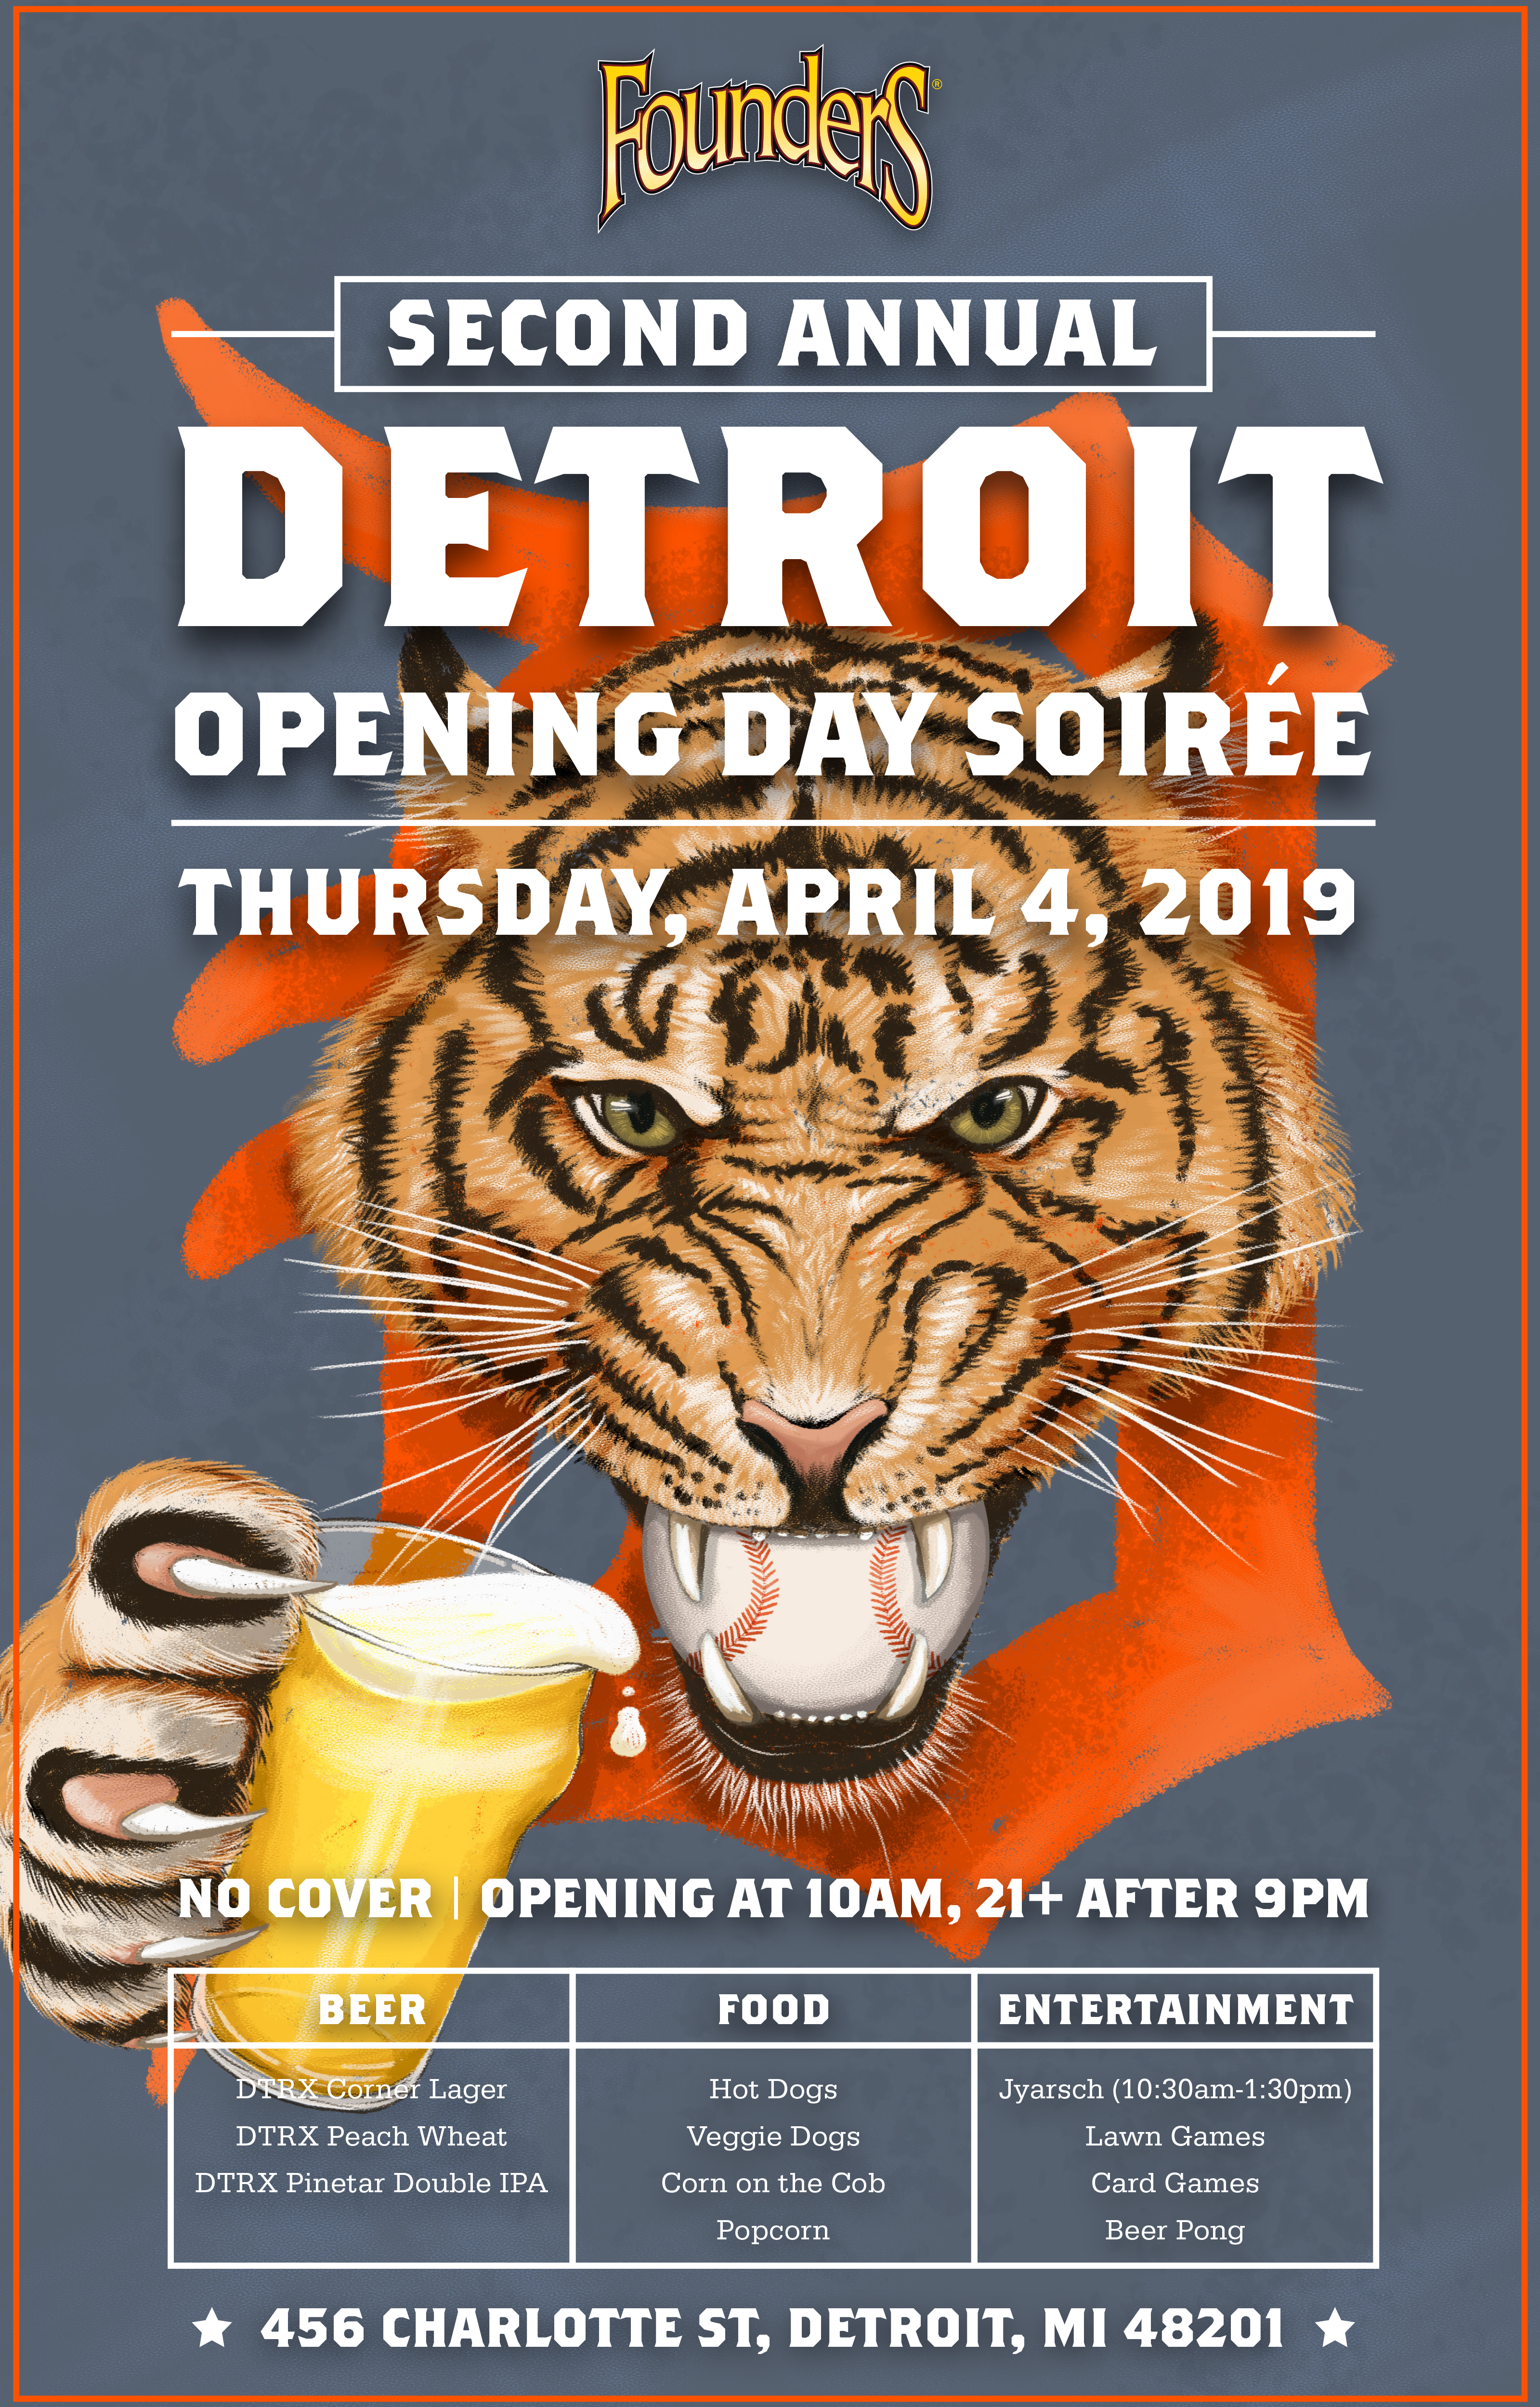 Founders Second Annual Detroit Opening Day Soirée